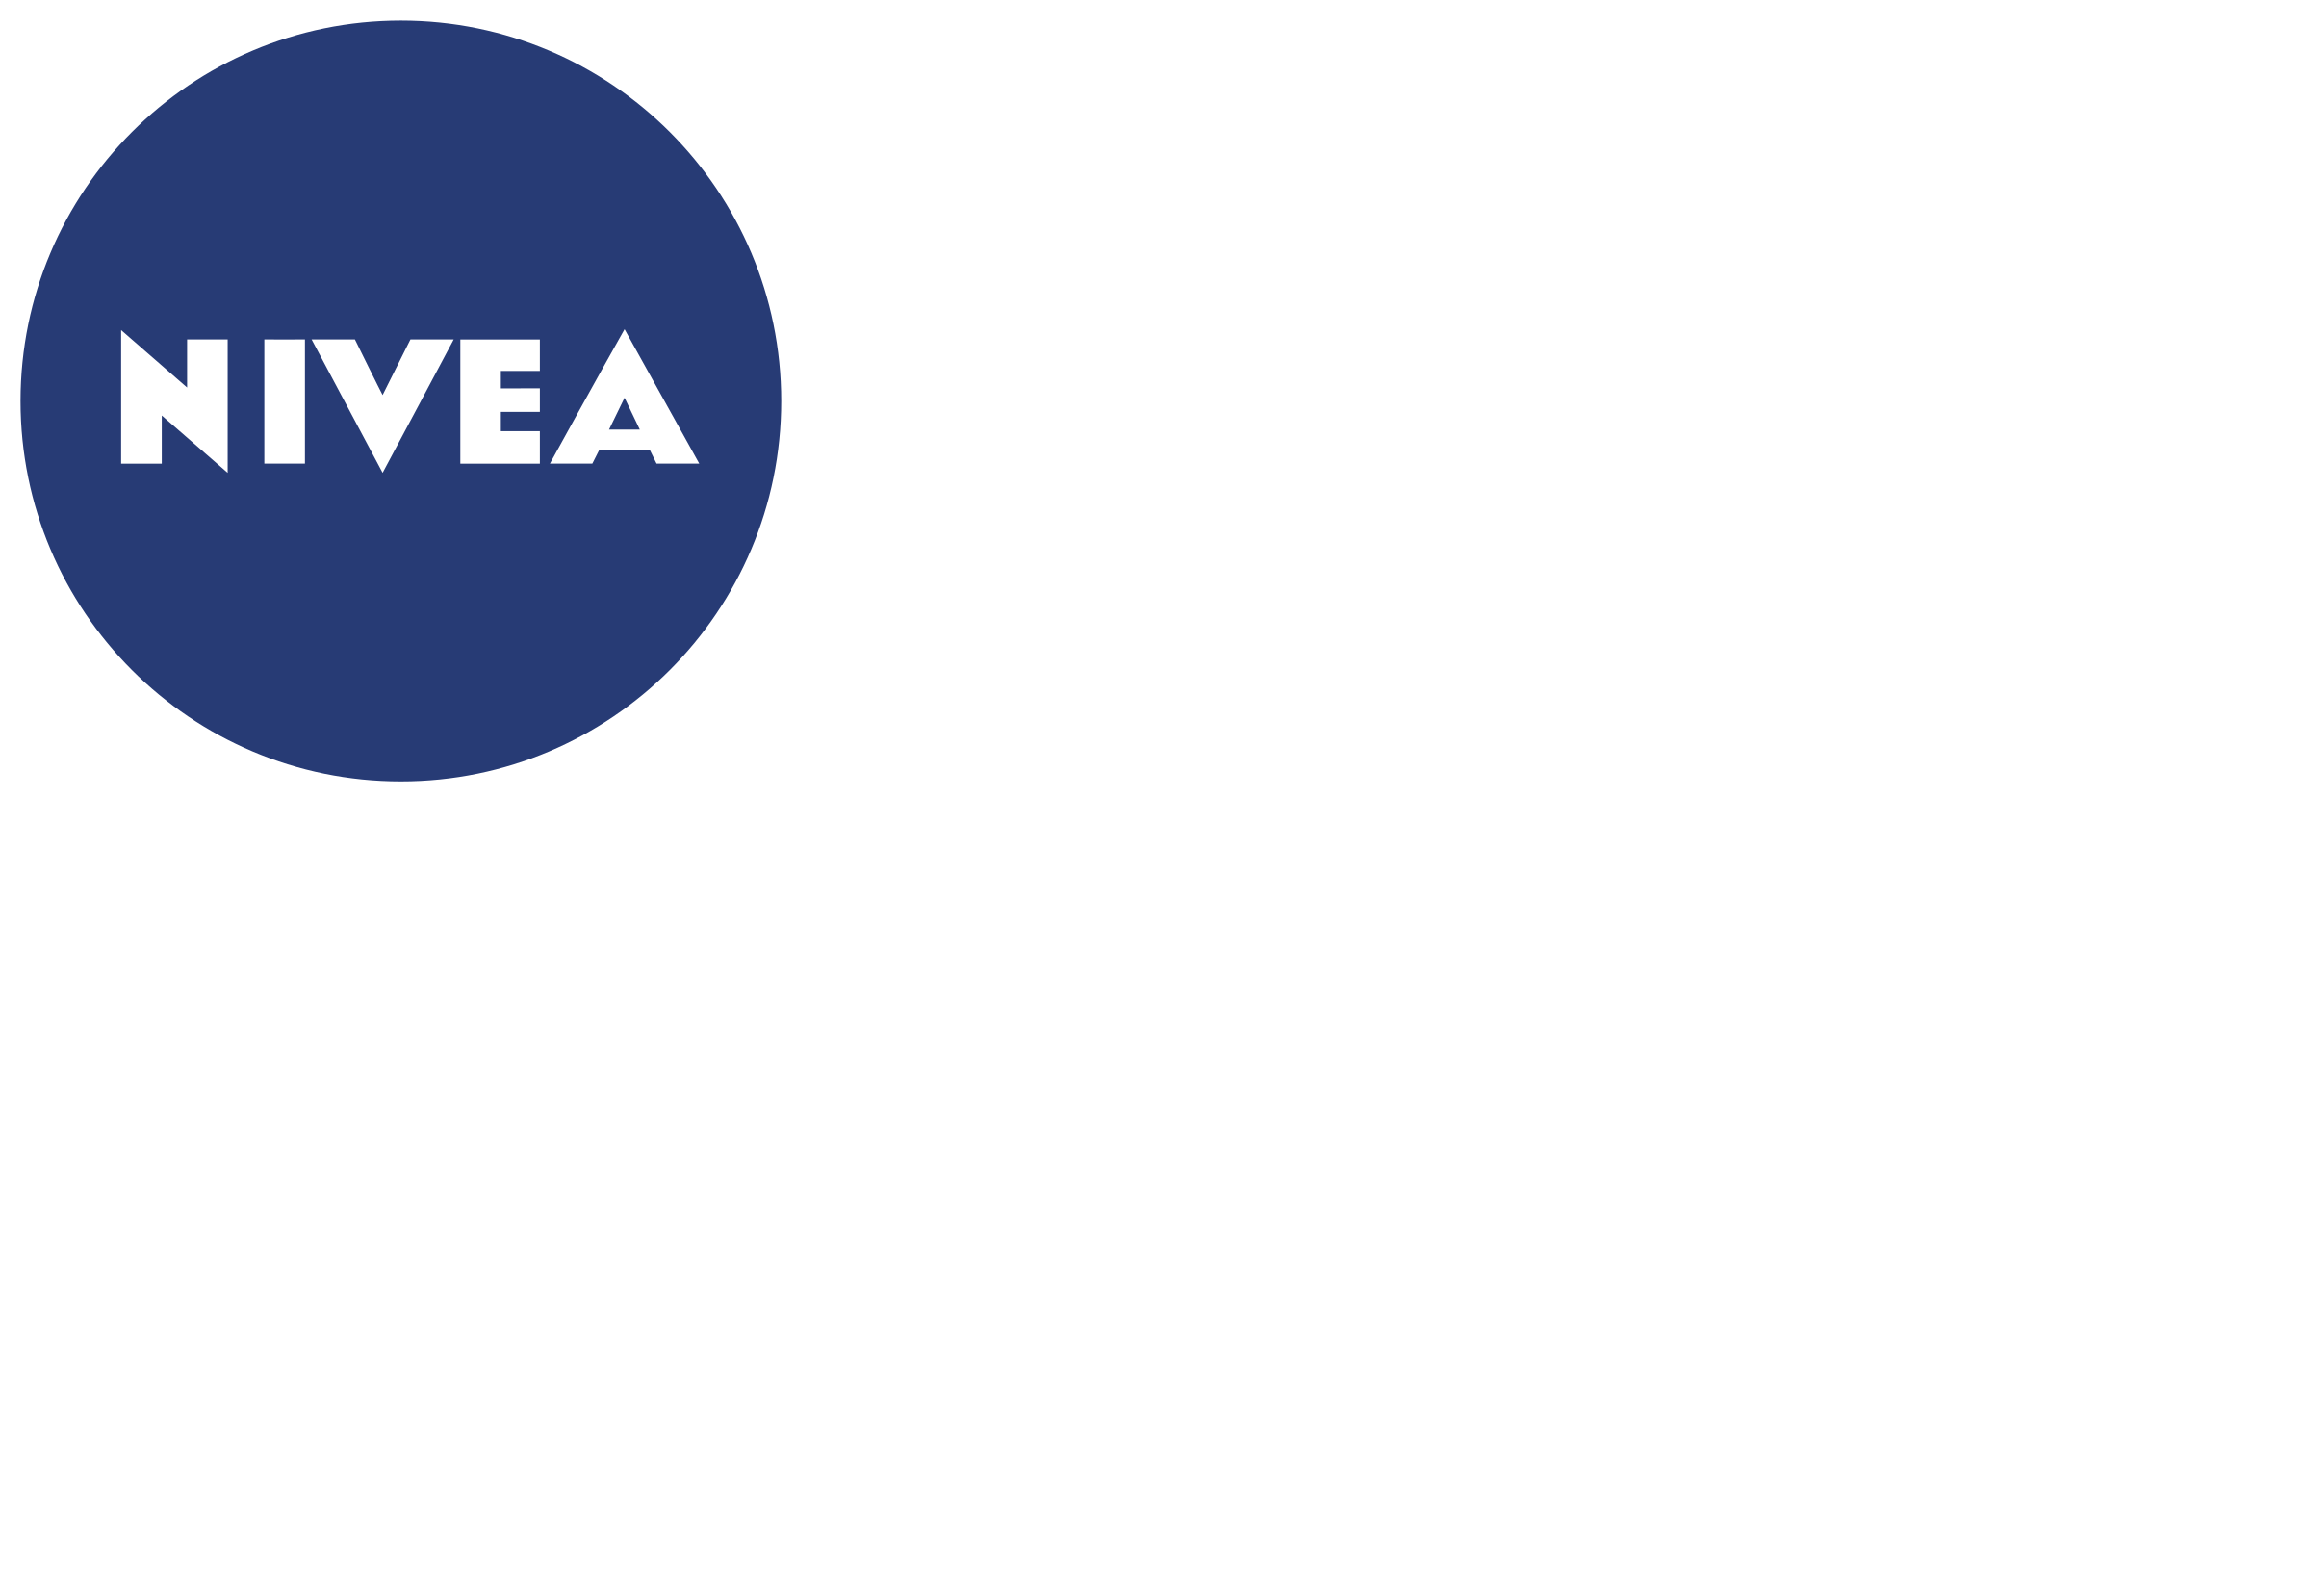 Nivea Logo PNG Transparent & SVG Vector.